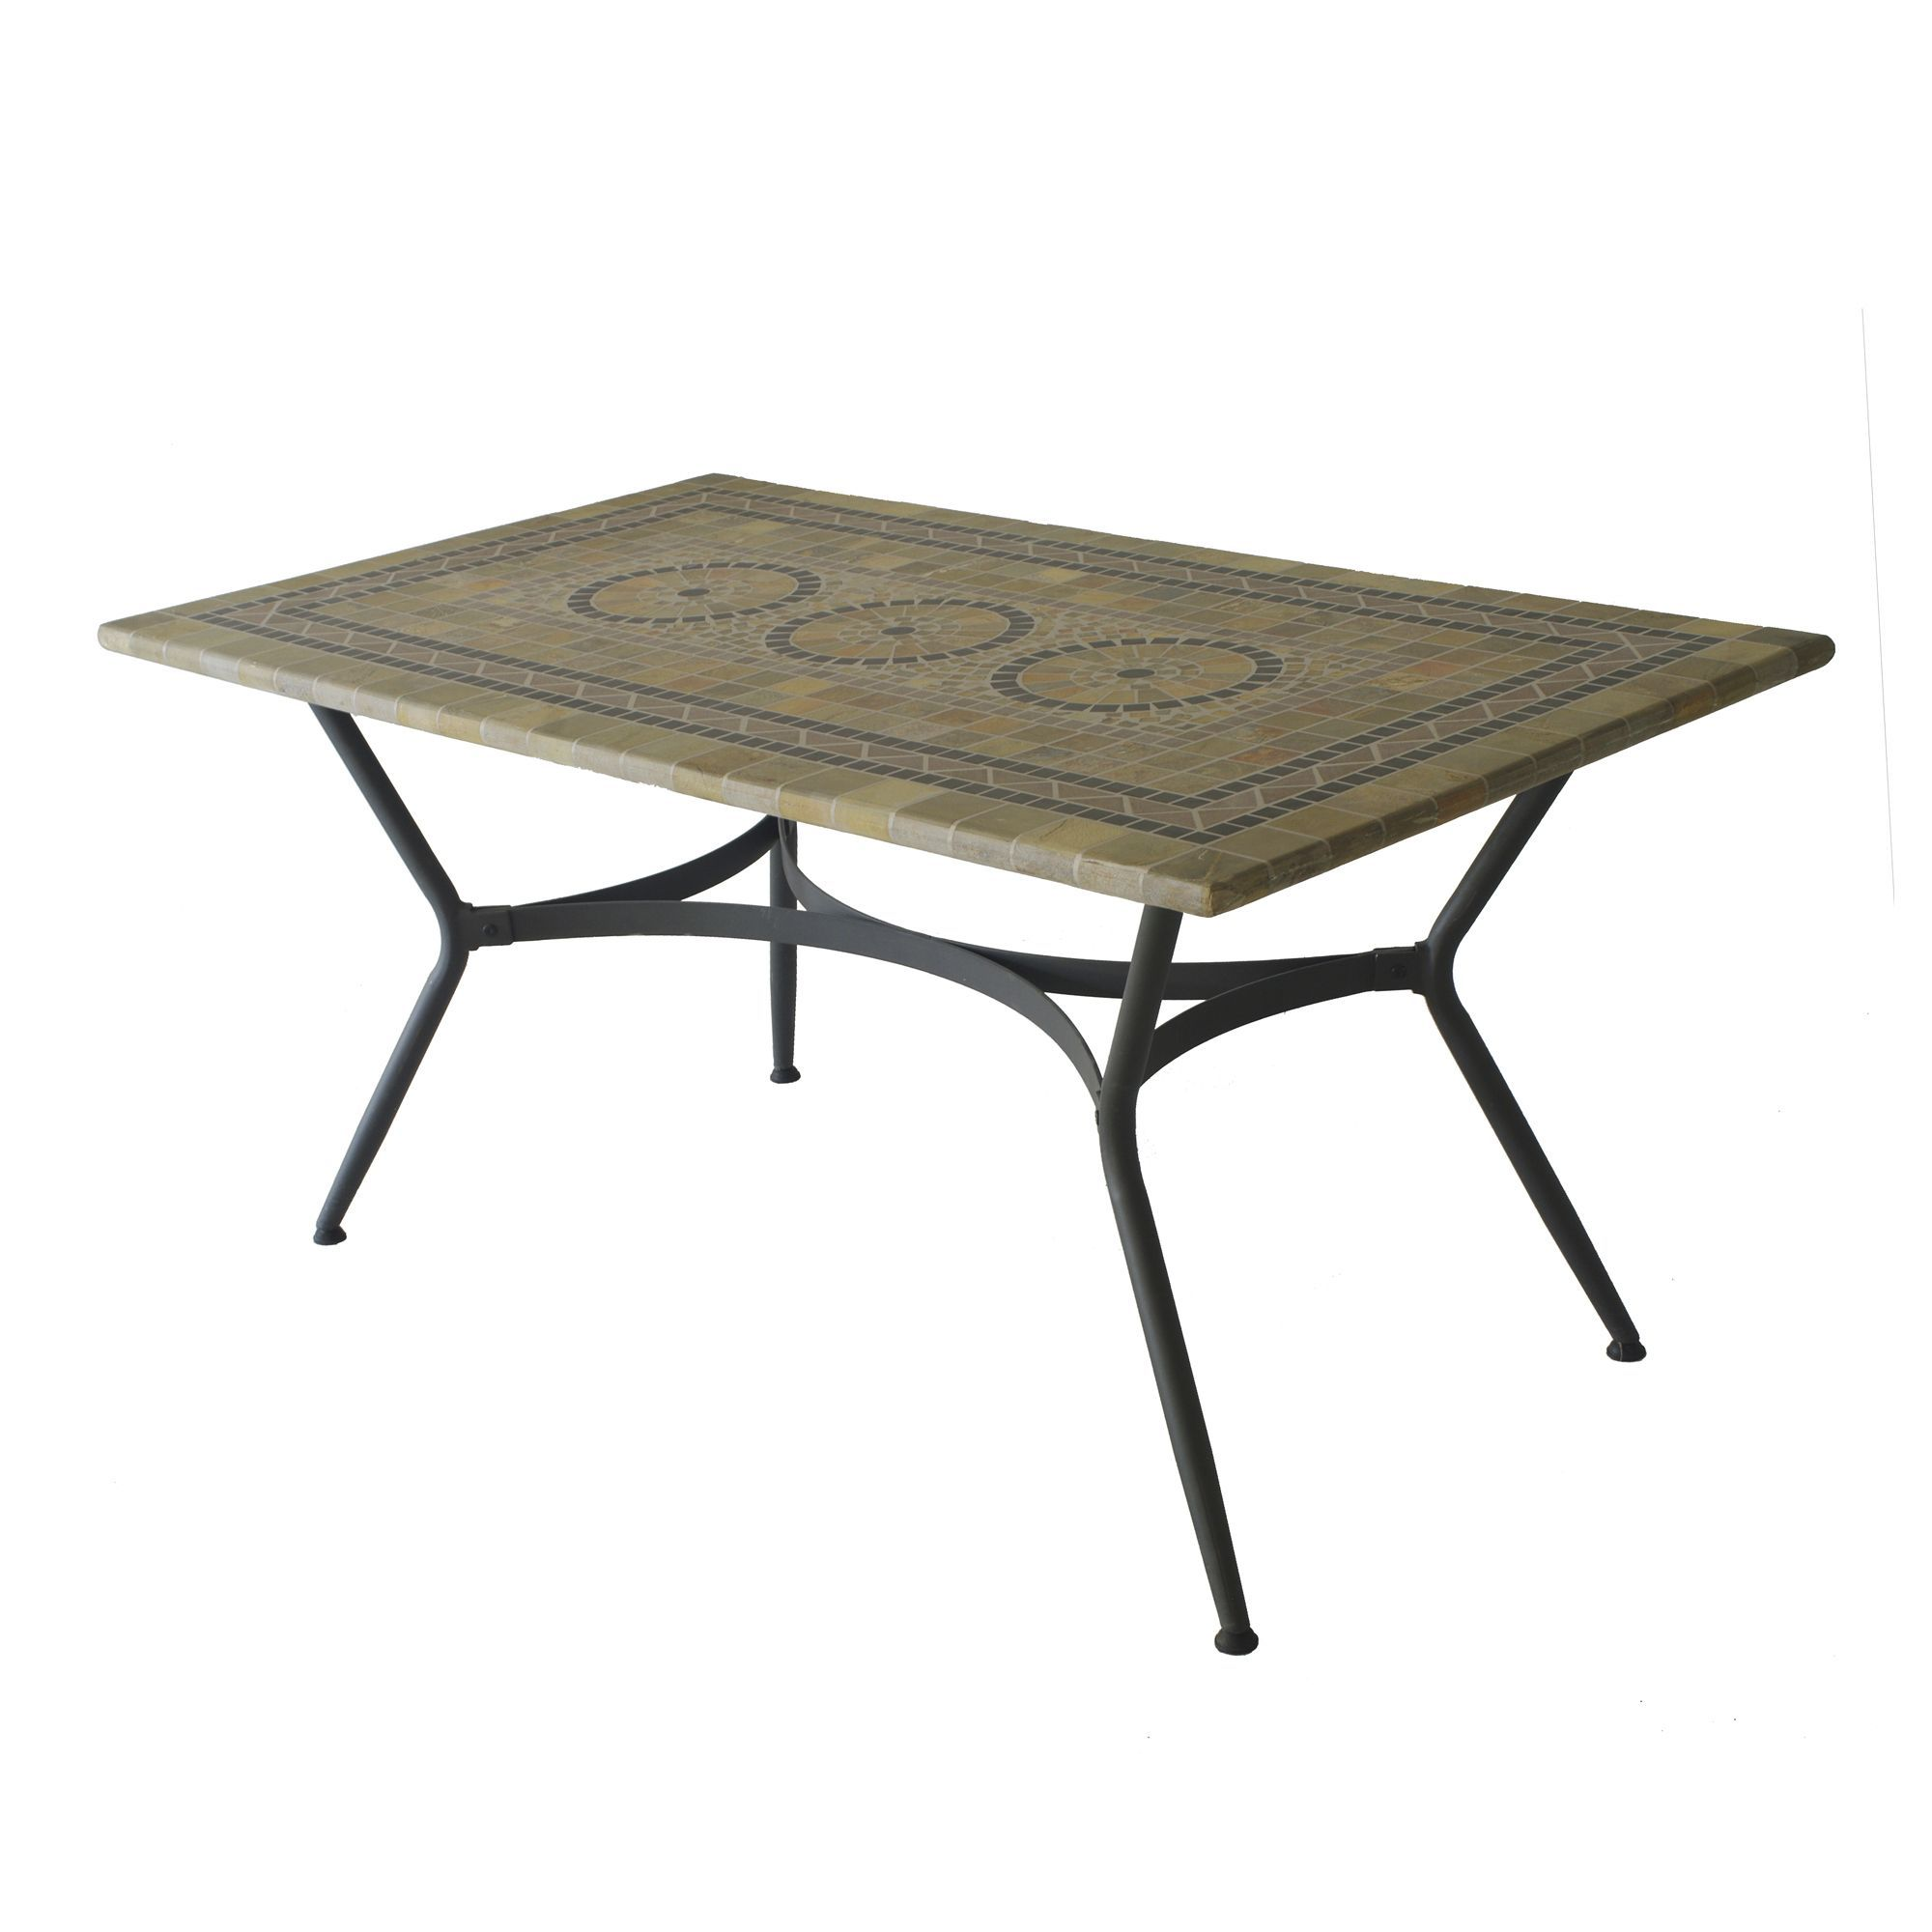 Table de jardin rectangulaire mosa que noir oxyd agadir tables de jardin salon de jardin - Table de jardin en mosaique ...